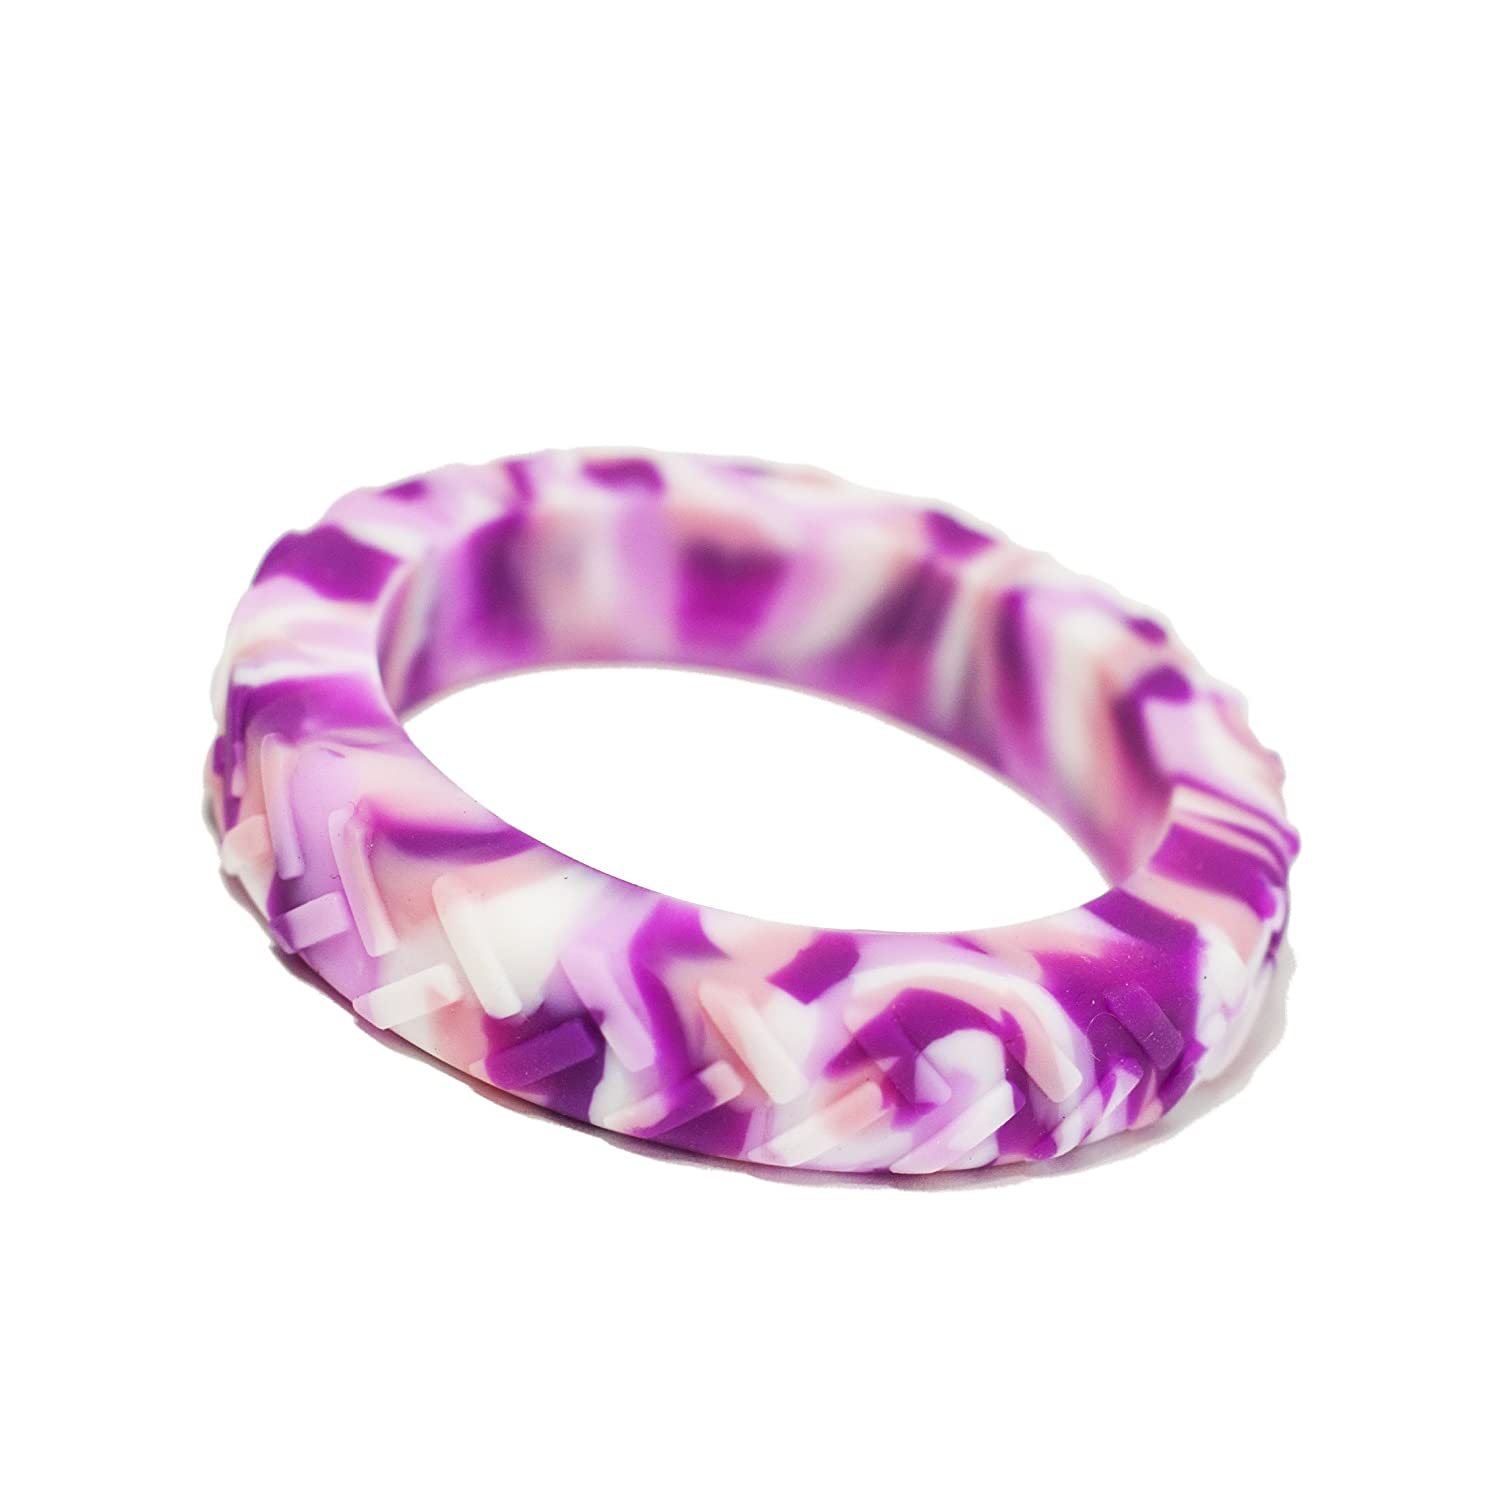 Amazon.com: Tread Bangle - Dessert - Chew Bracelet for Sensory, Oral ...